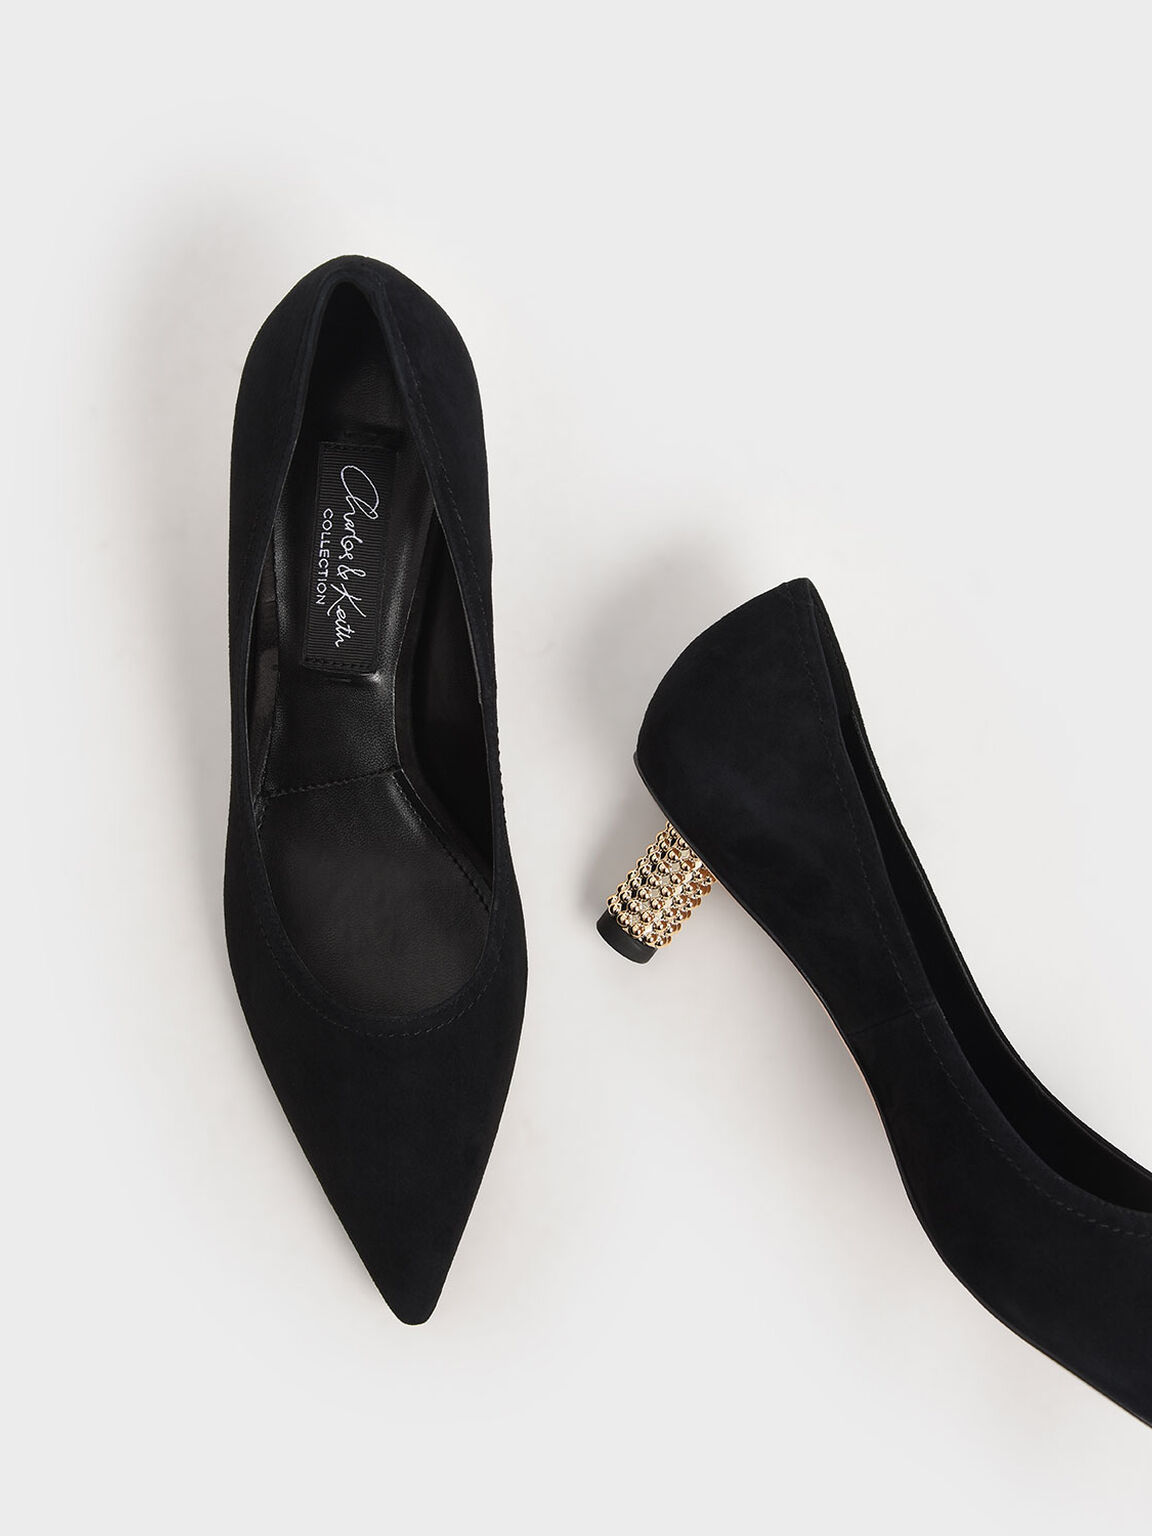 Embellished Kitten Heel Pumps (Kid Suede), Black, hi-res